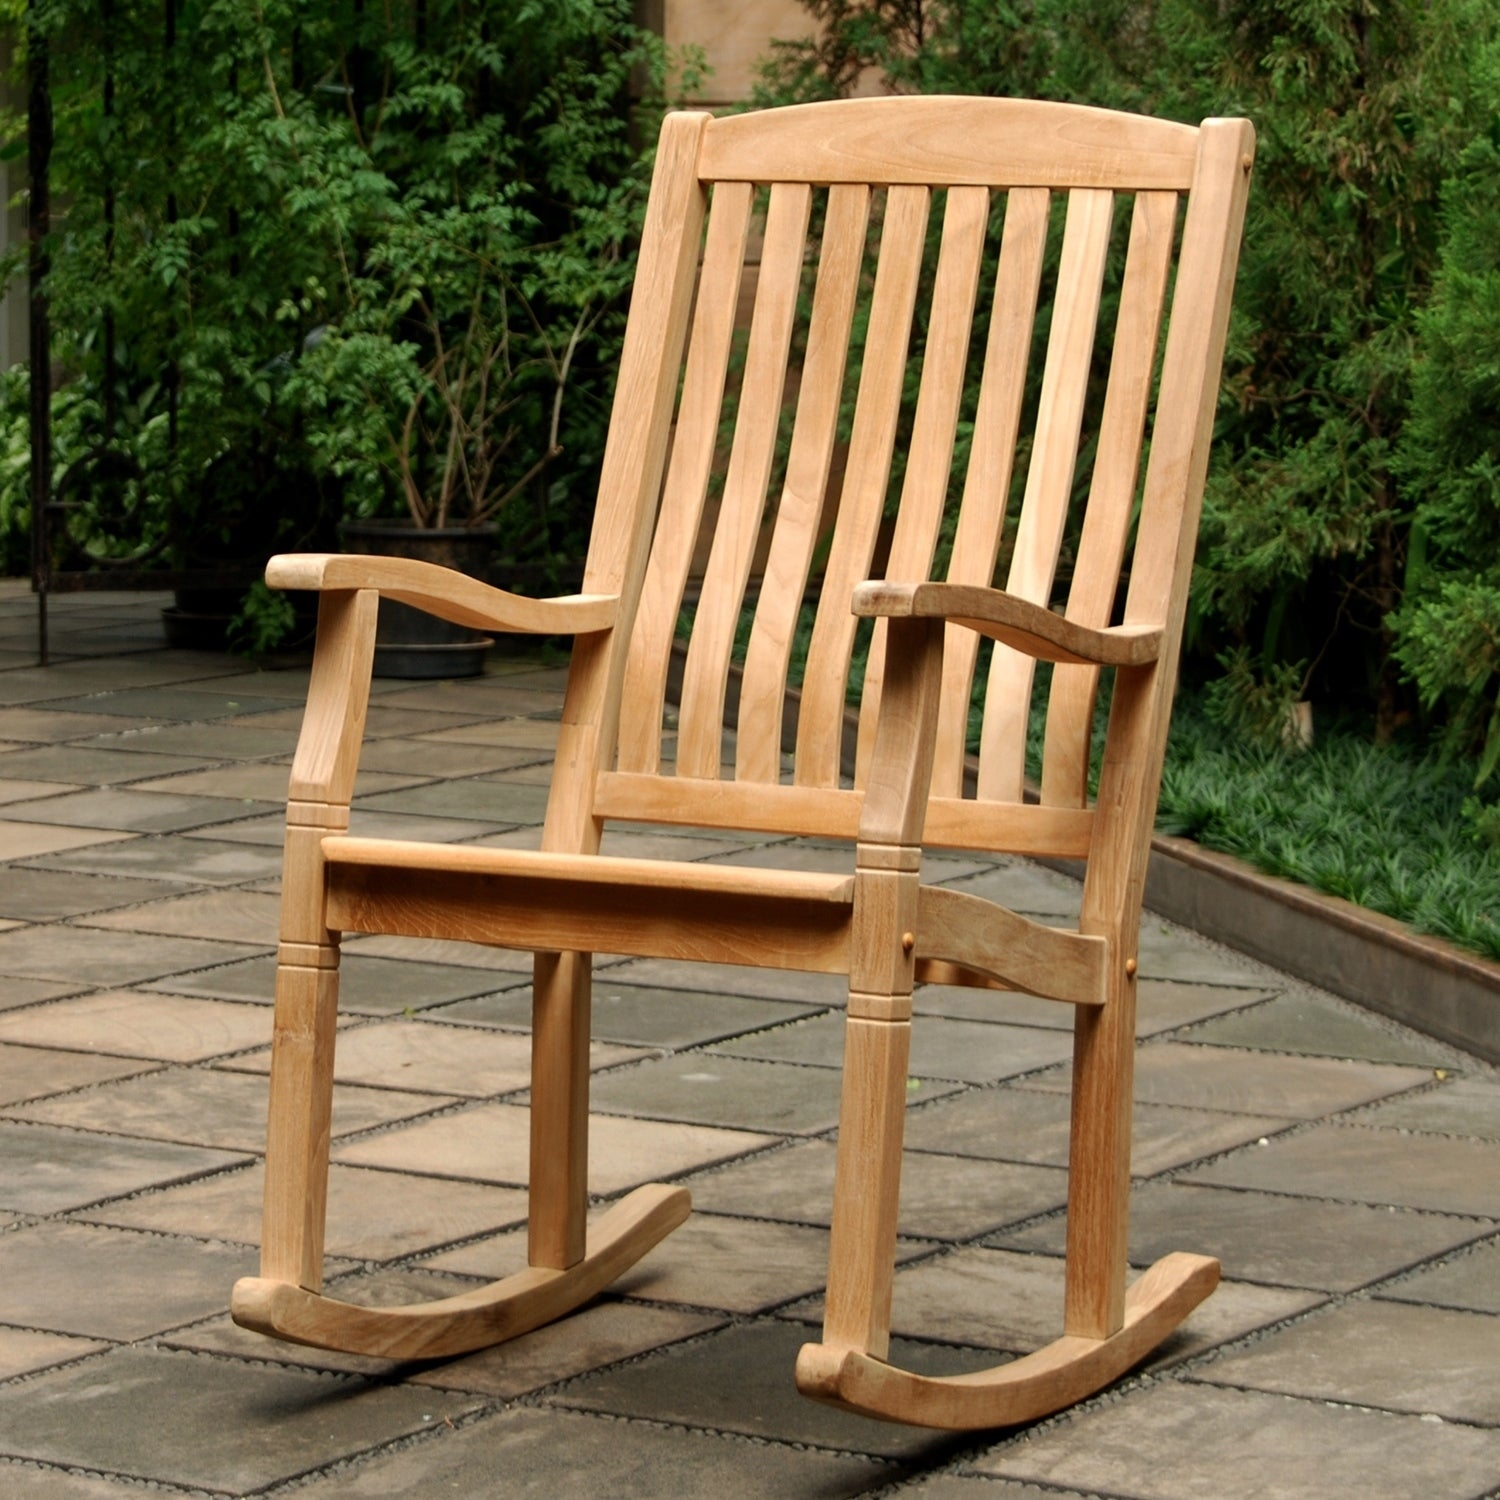 Rocking Chair Porch Indoor Outdoor Furniture Yard Patio